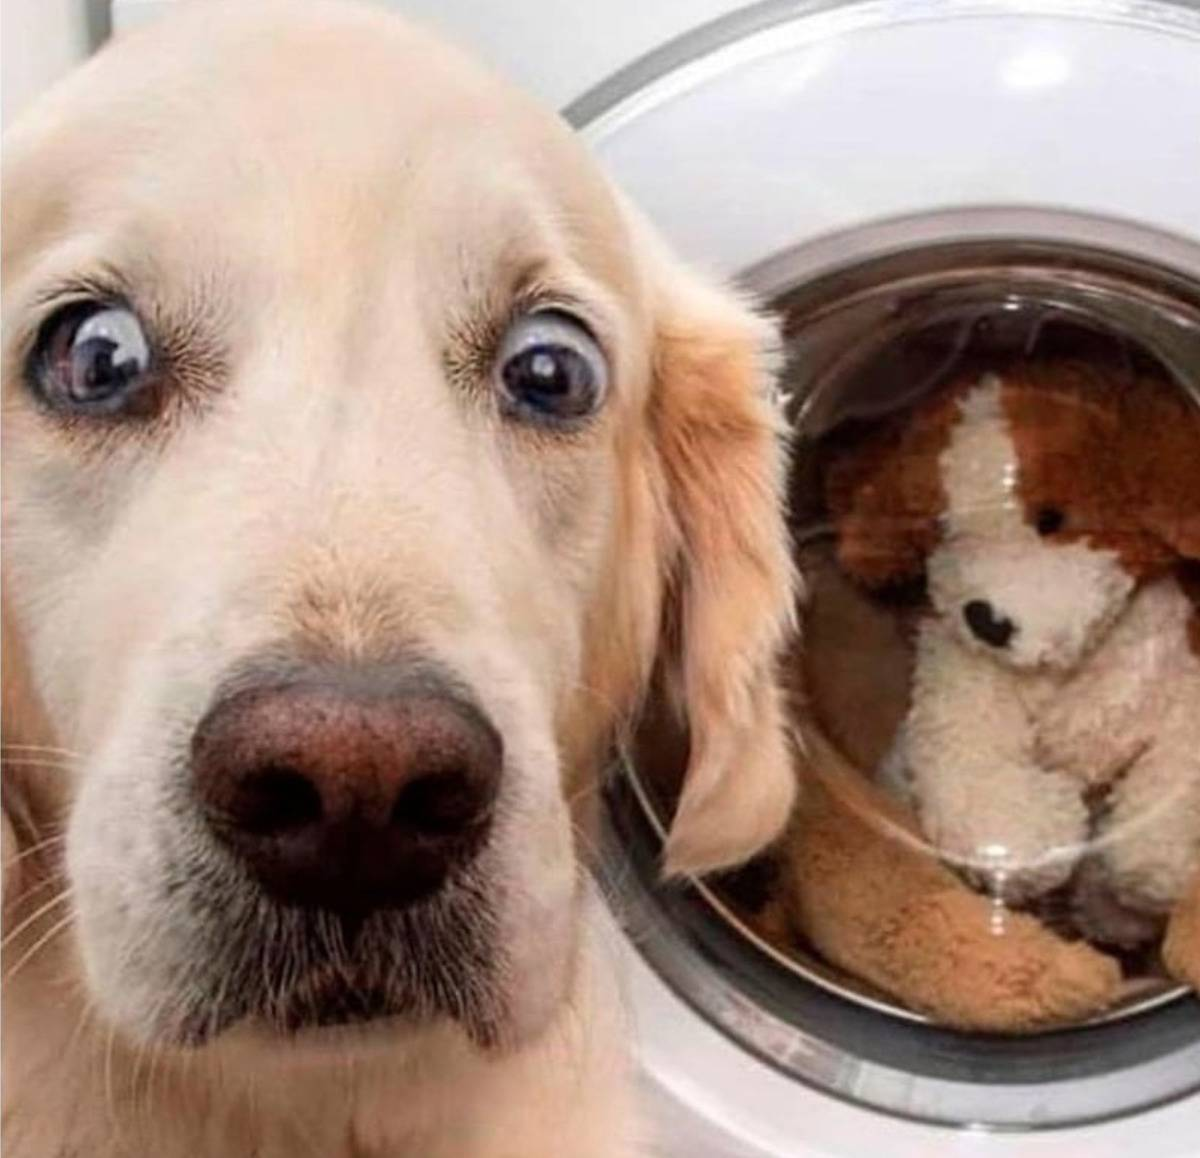 A dog looks panicked because his toy is in the washing machine.